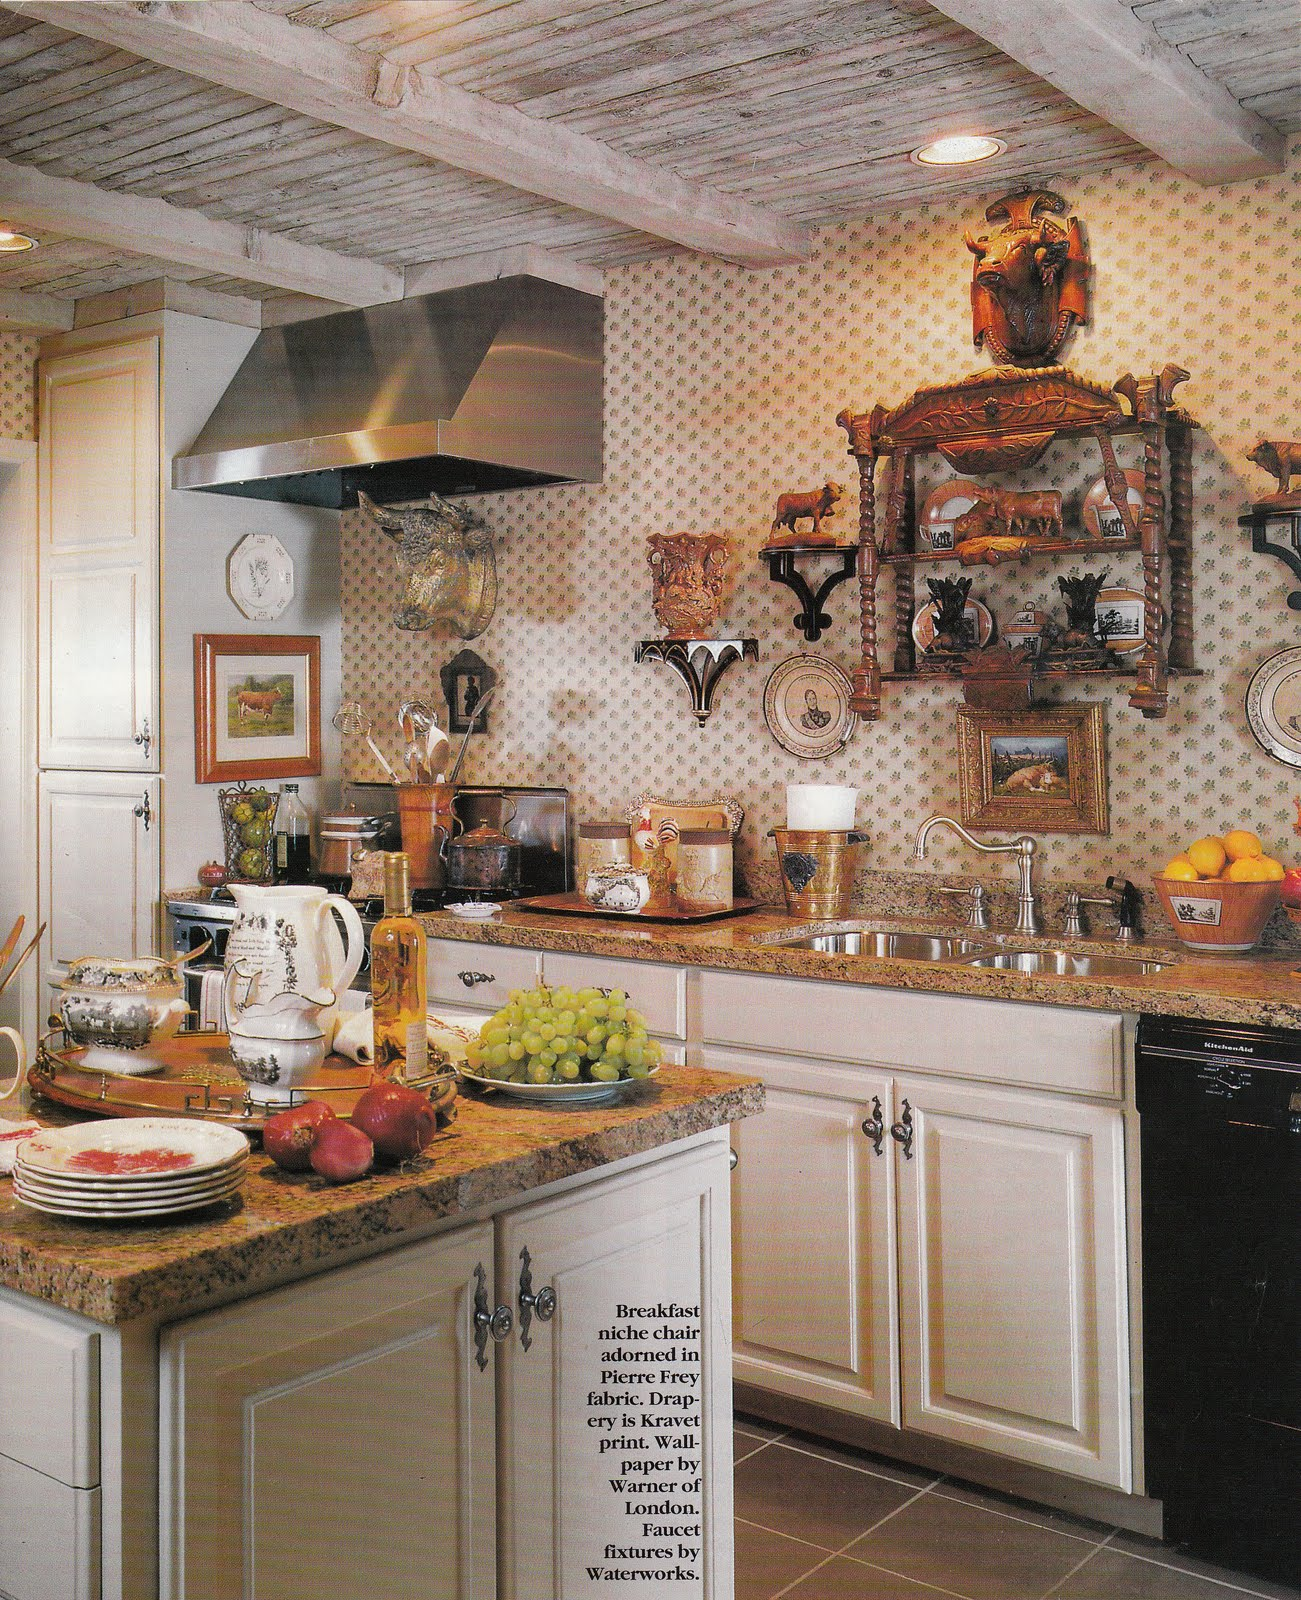 Hydrangea hill cottage french country decorating for French country kitchen decorating ideas